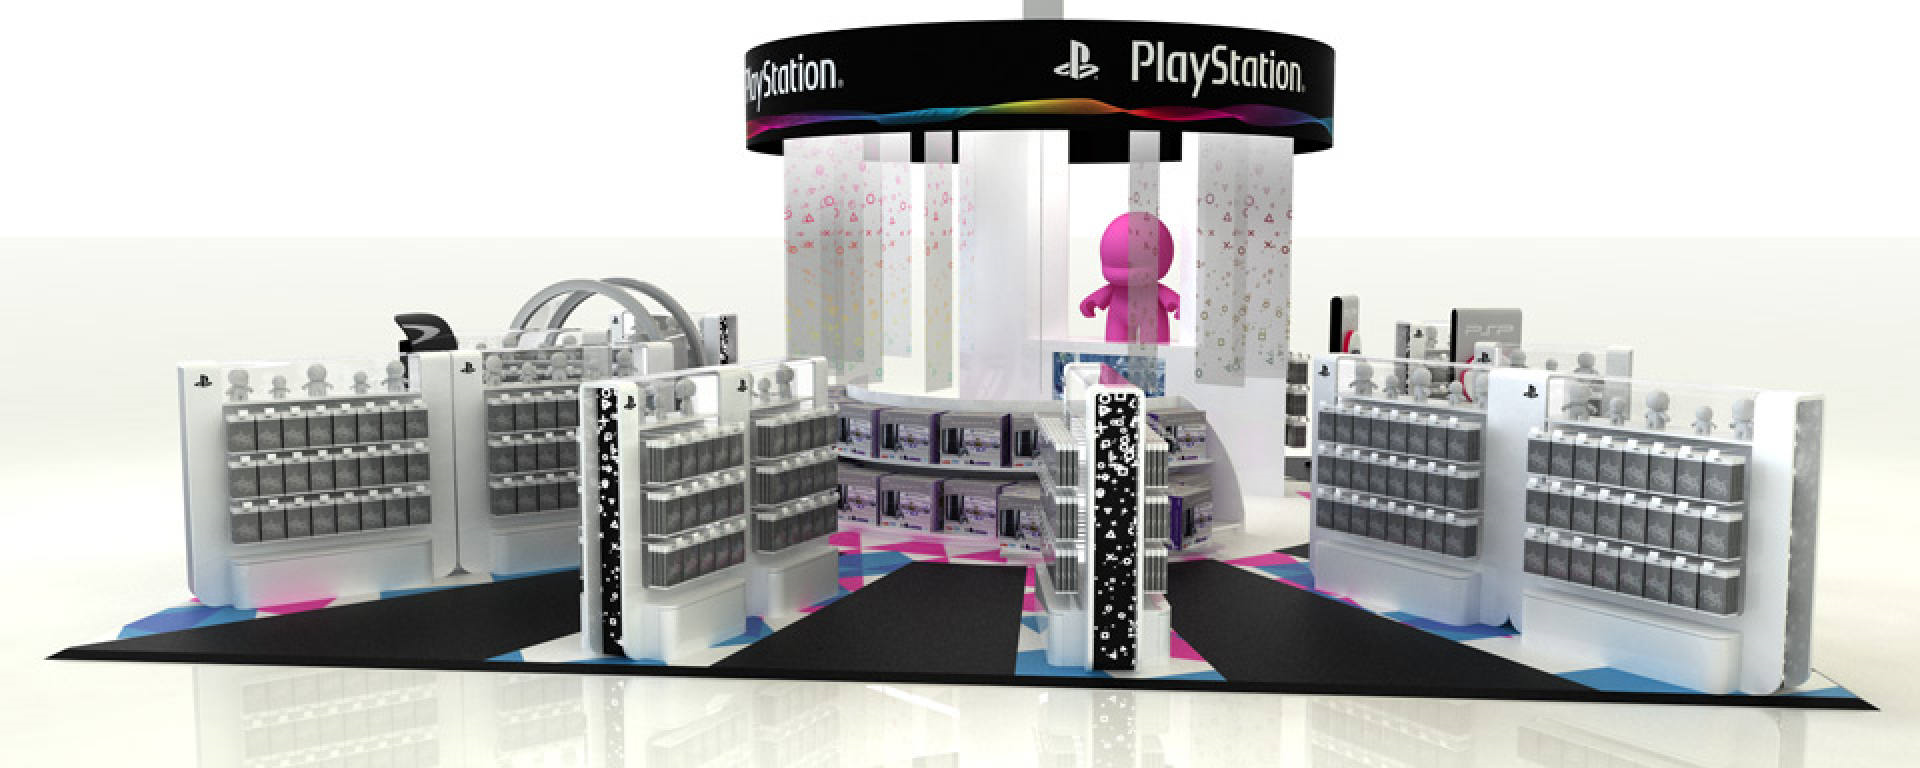 PLV Stand Digital - Iconomedia Saison 2 - SONY